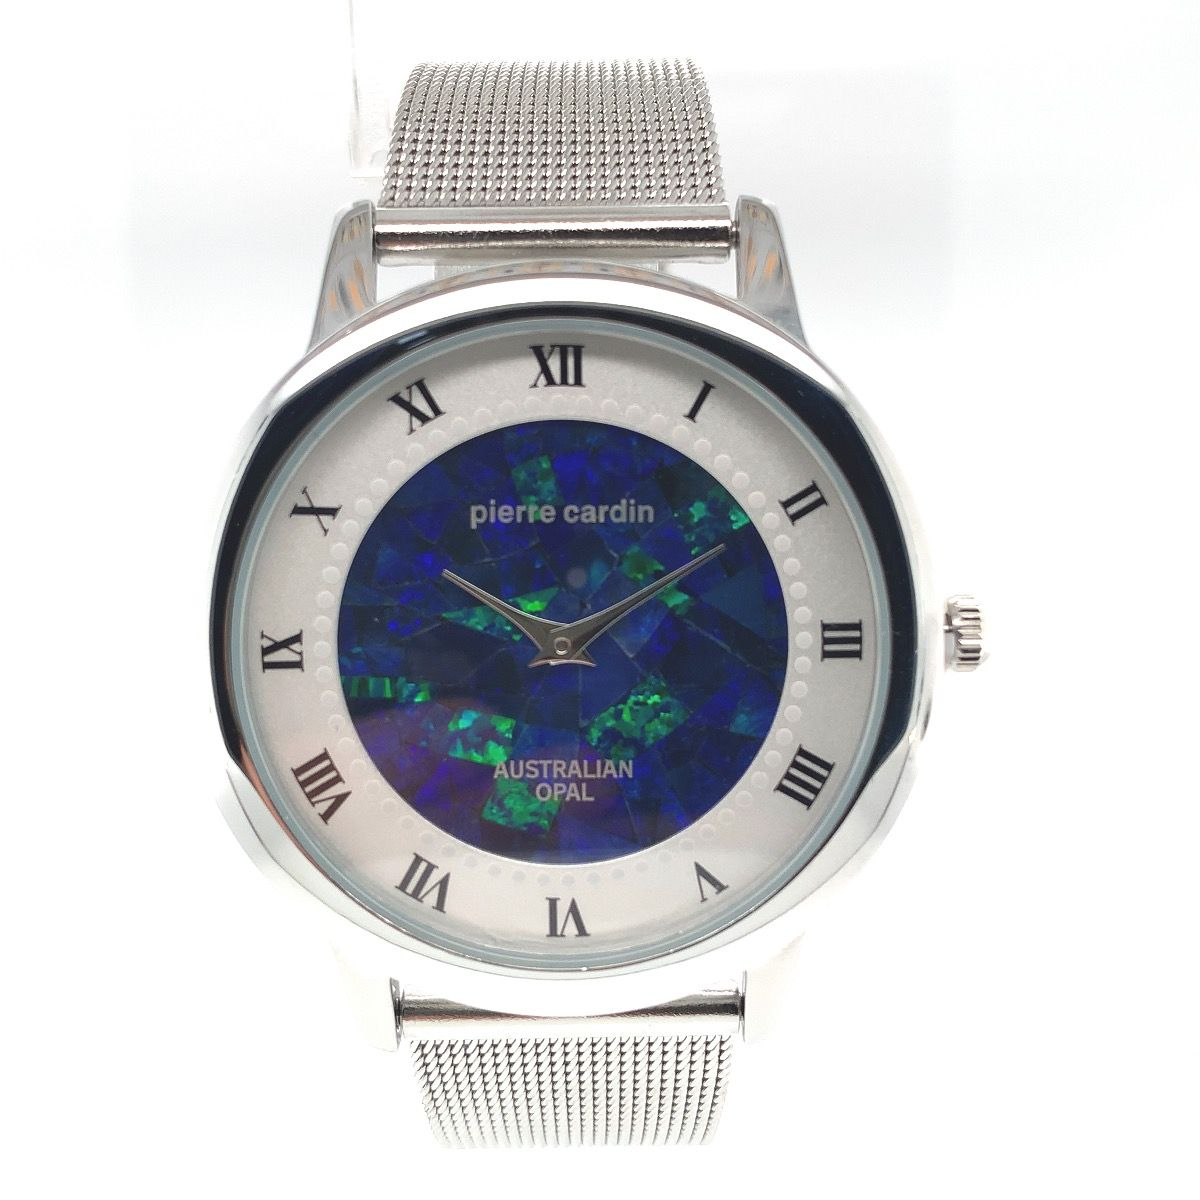 Pierre Cardin Opal face mens watch with mesh band